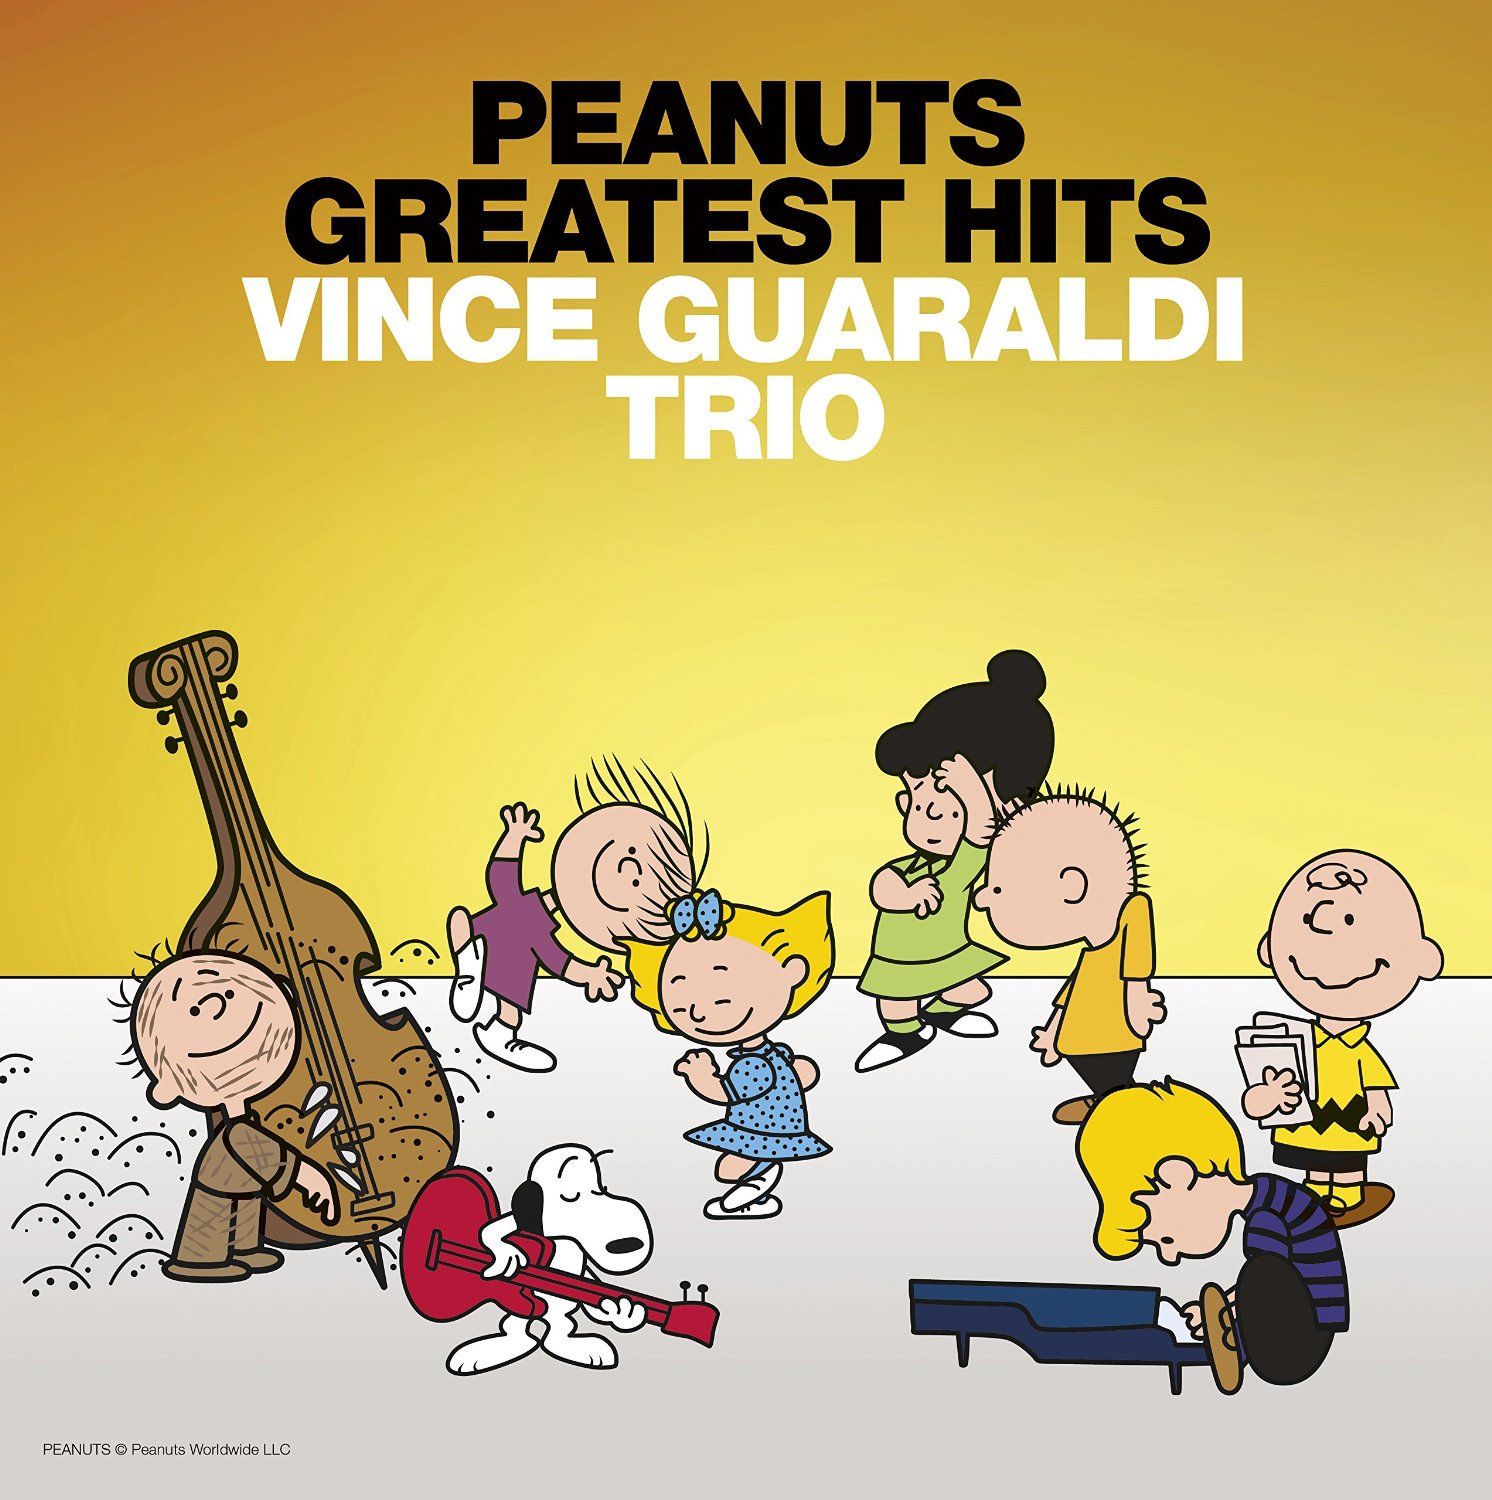 Vince Guaraldi Peanuts Wiki Fandom Powered By Wikia